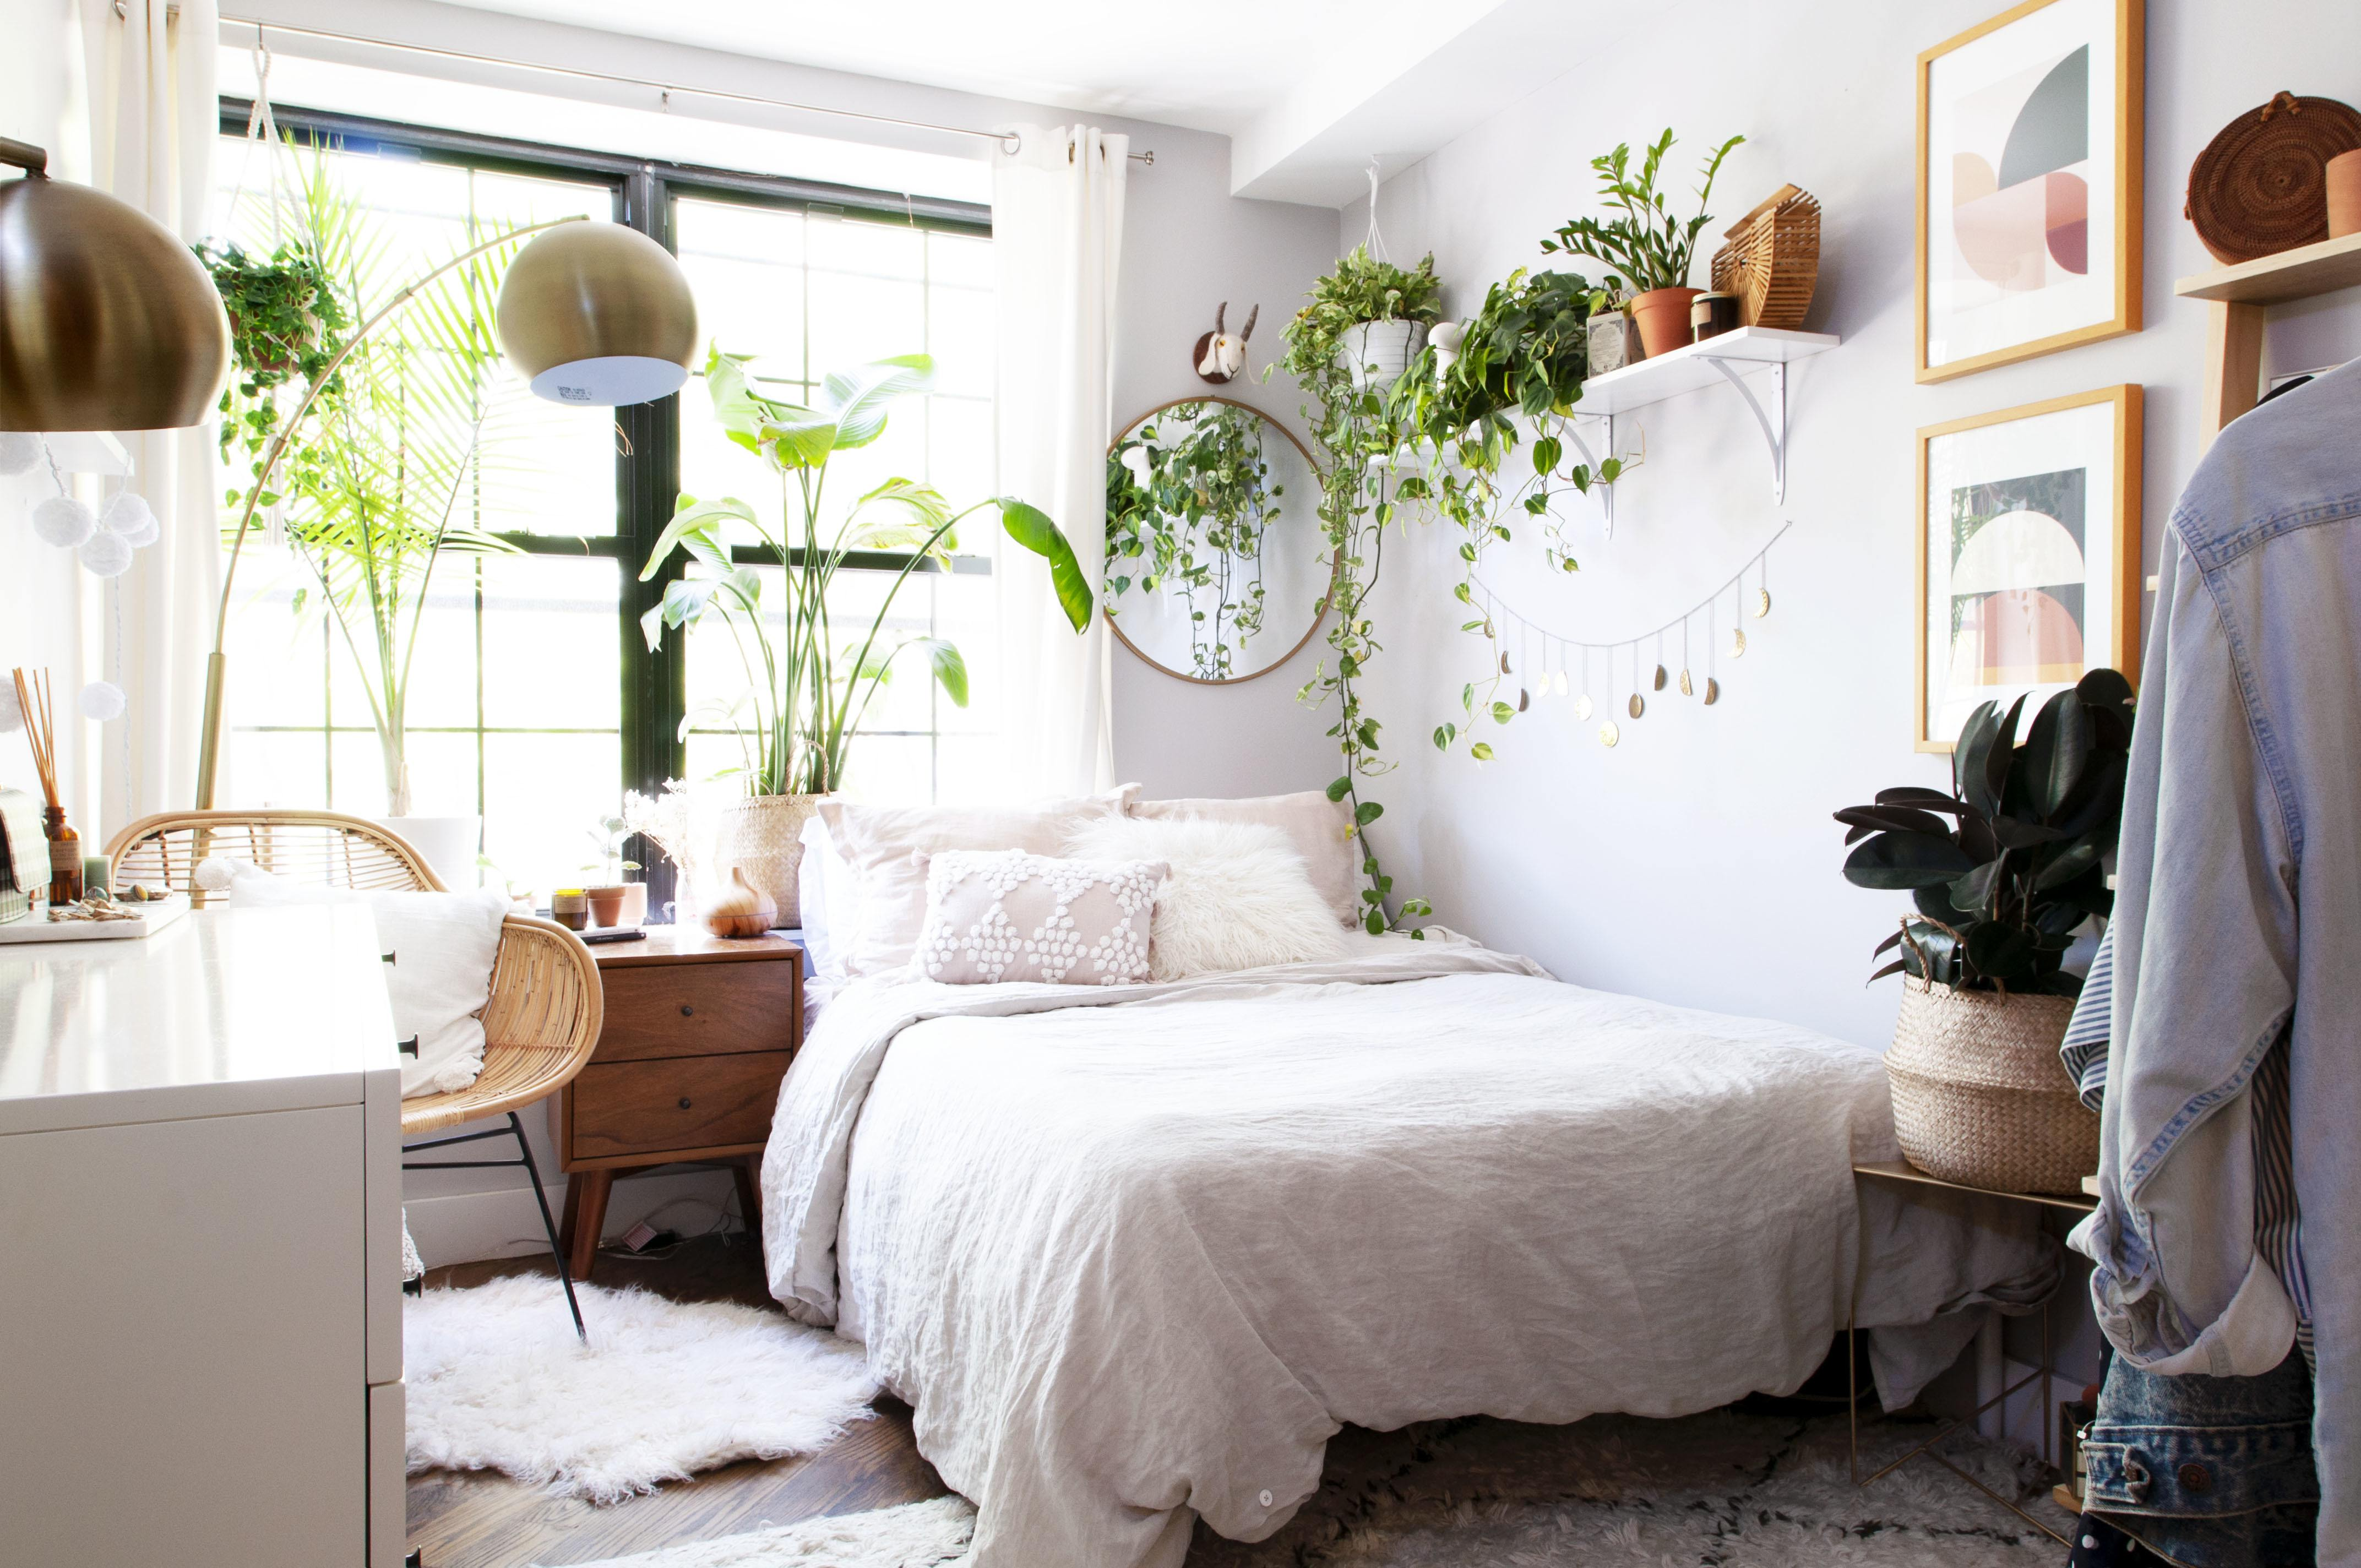 Bedroom Furniture Ideas And Decor Helpful Advice Inspiration And Shopping Hunker